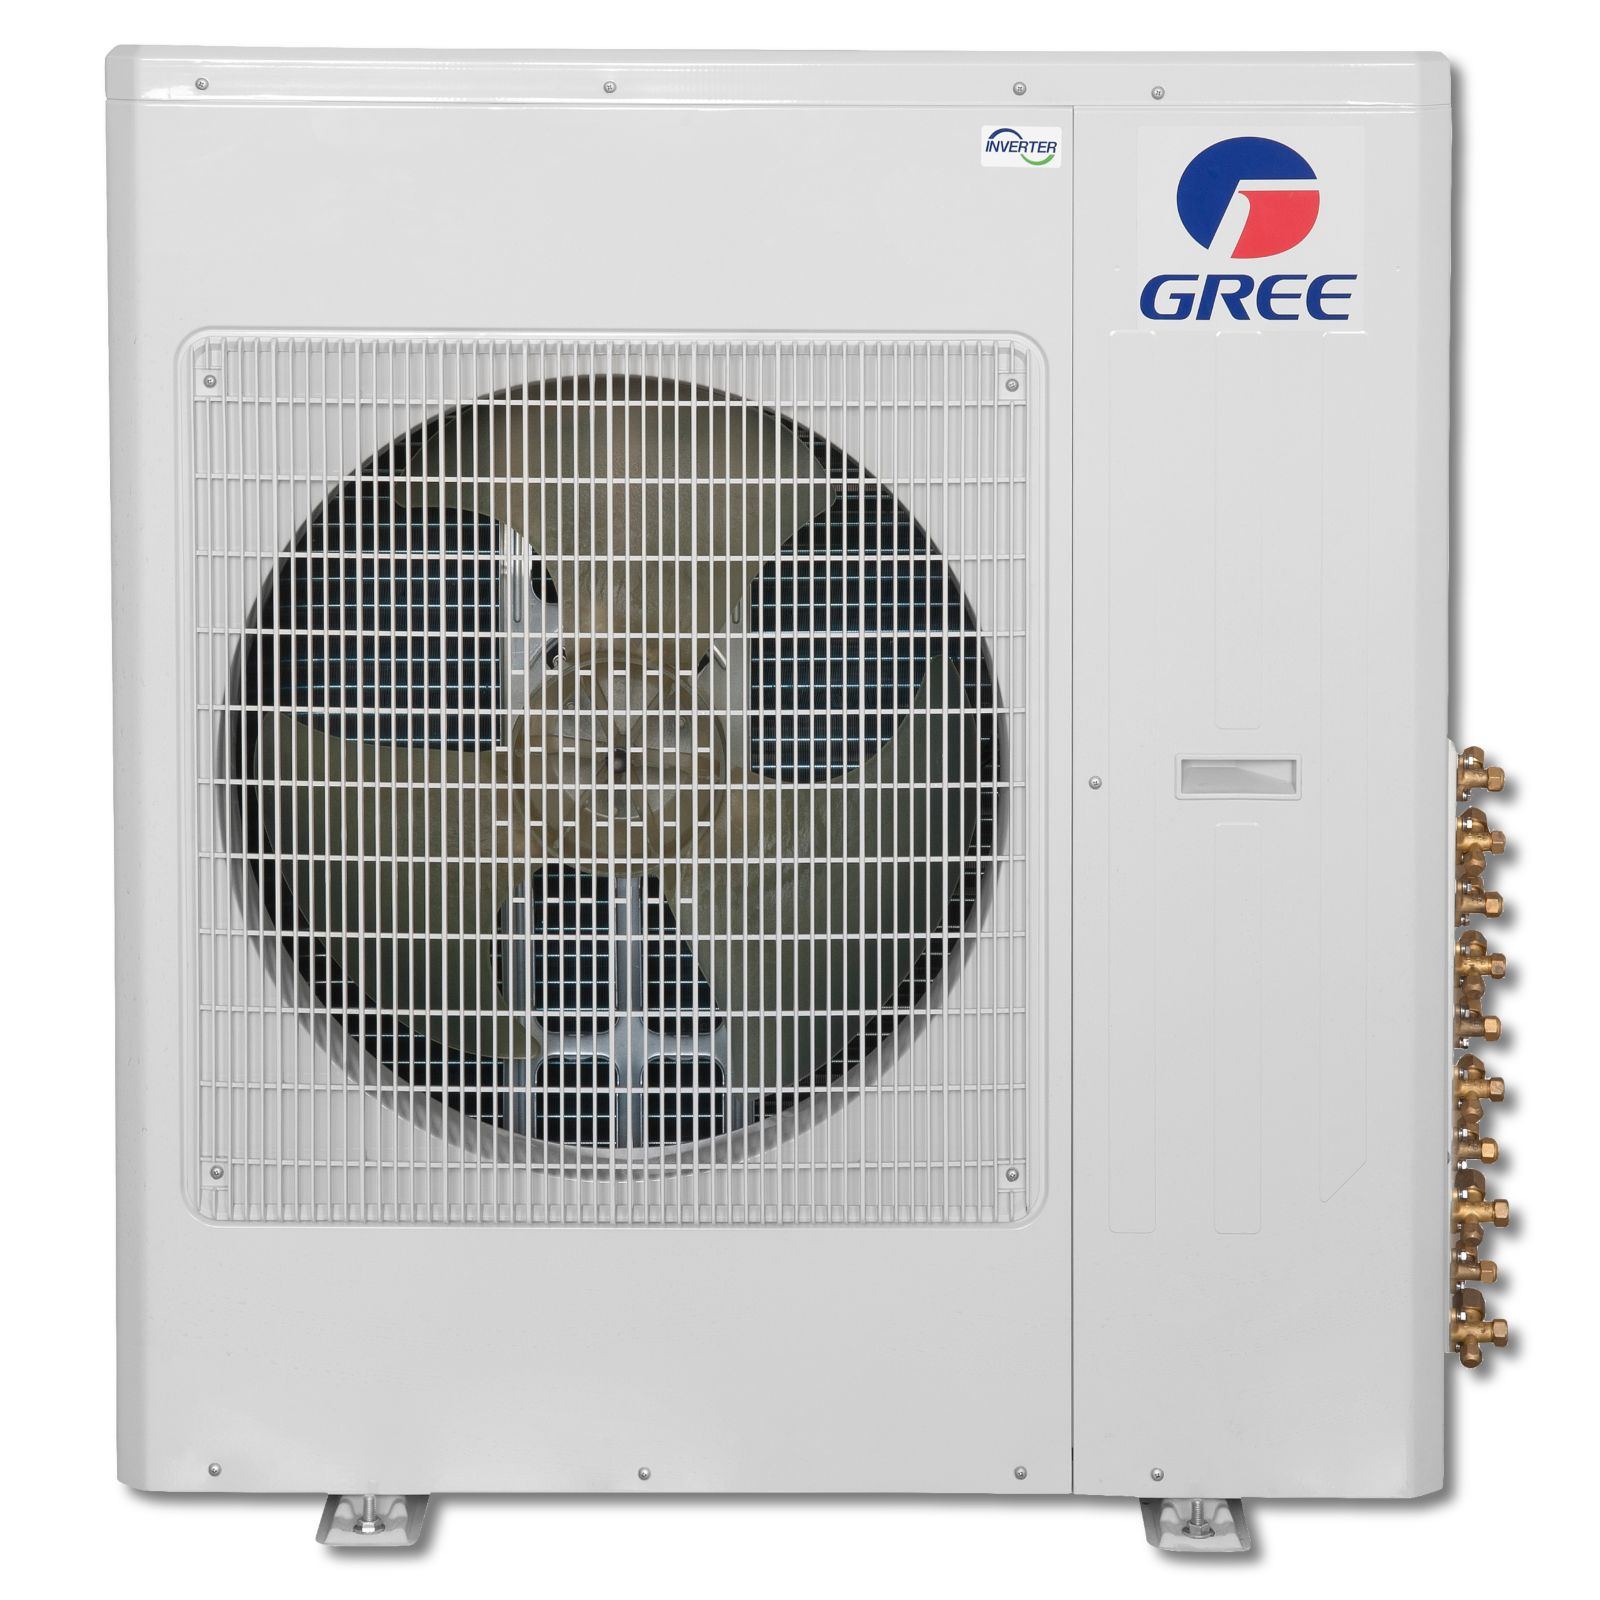 GREE MULTI42HP230V1BO - 3 1/2 Ton, 16 SEER EVO+ Multi Ductless Mini-Split Heat Pump 208-230/1/60 High Efficiency